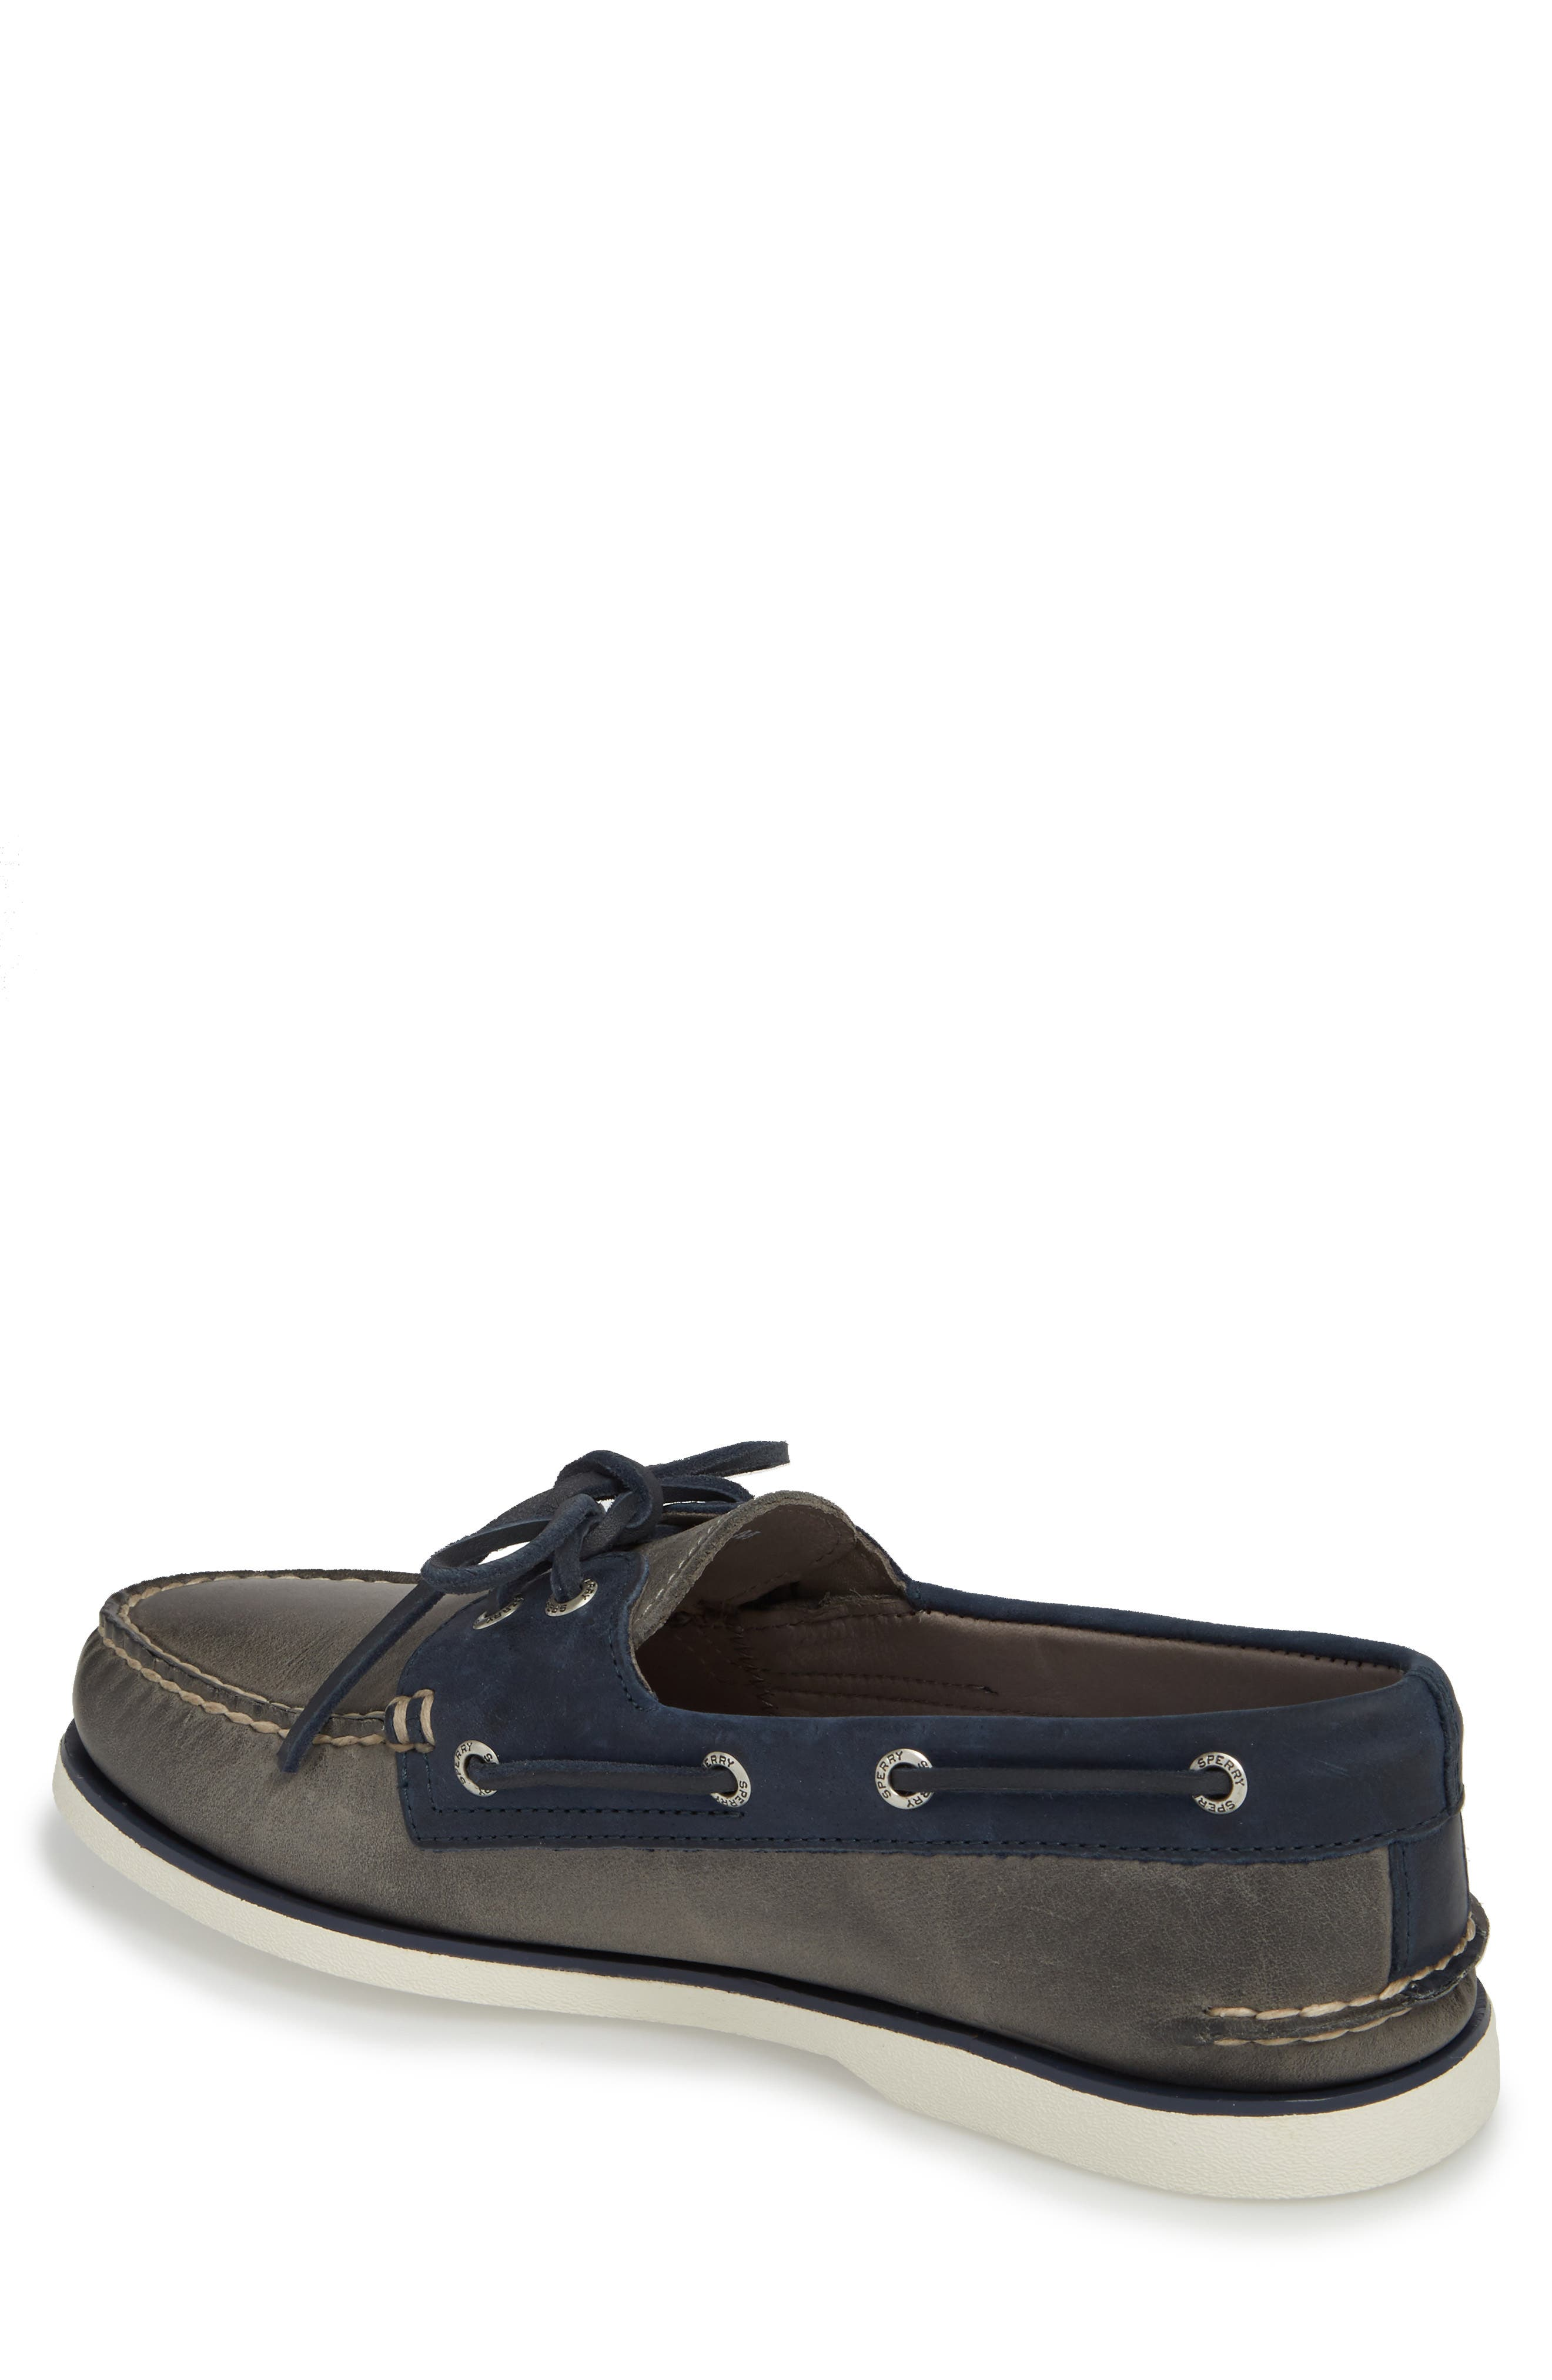 Gold Cup Authentic Original Boat Shoe,                             Alternate thumbnail 2, color,                             GREY/ NAVY LEATHER